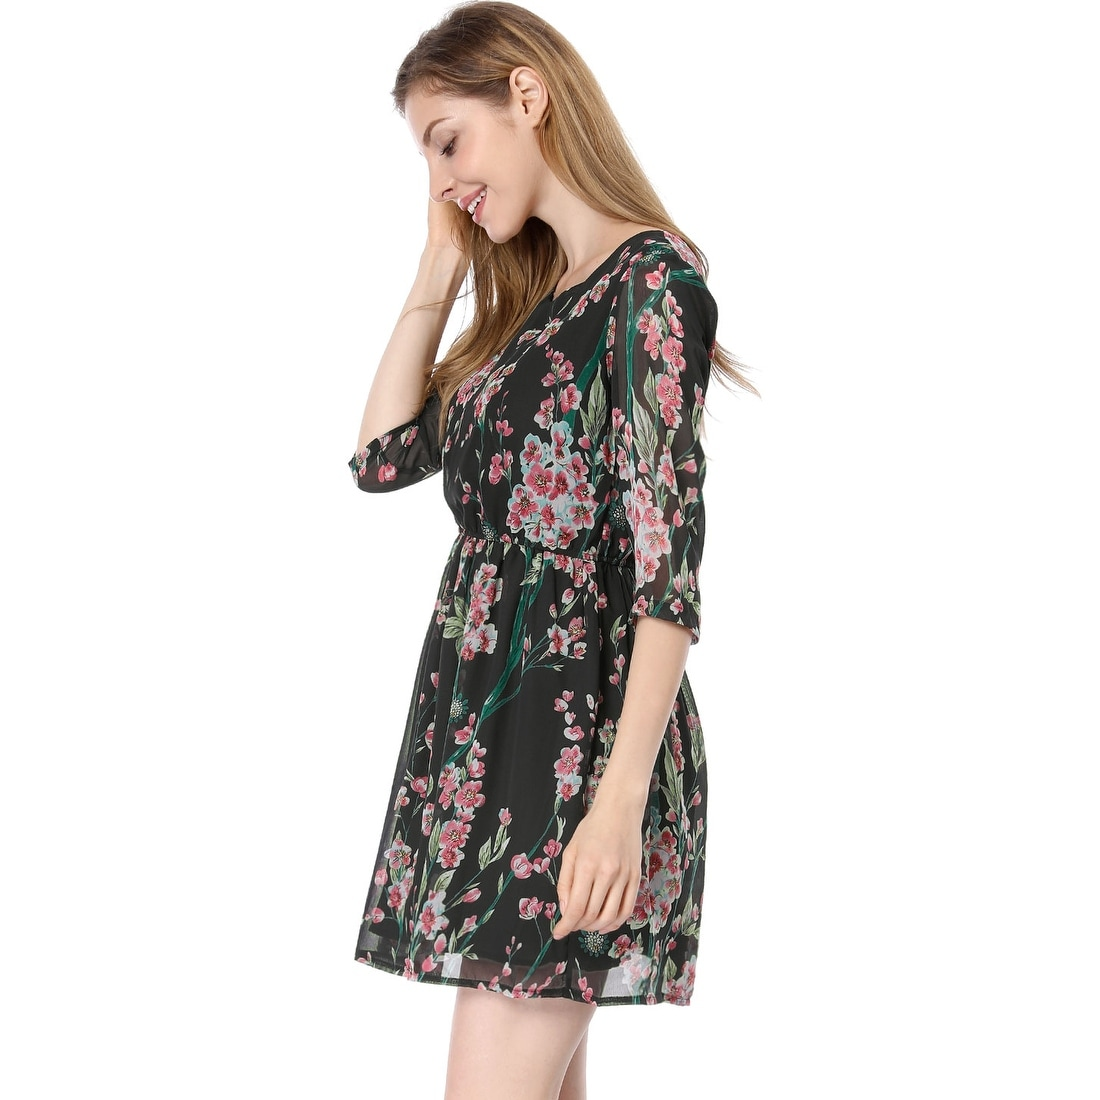 9d8693f1b0 Shop Allegra K Women 3 4 Sleeves Round Neck Floral Print Above Knee Skater  Dress - Free Shipping On Orders Over  45 - - 23580548